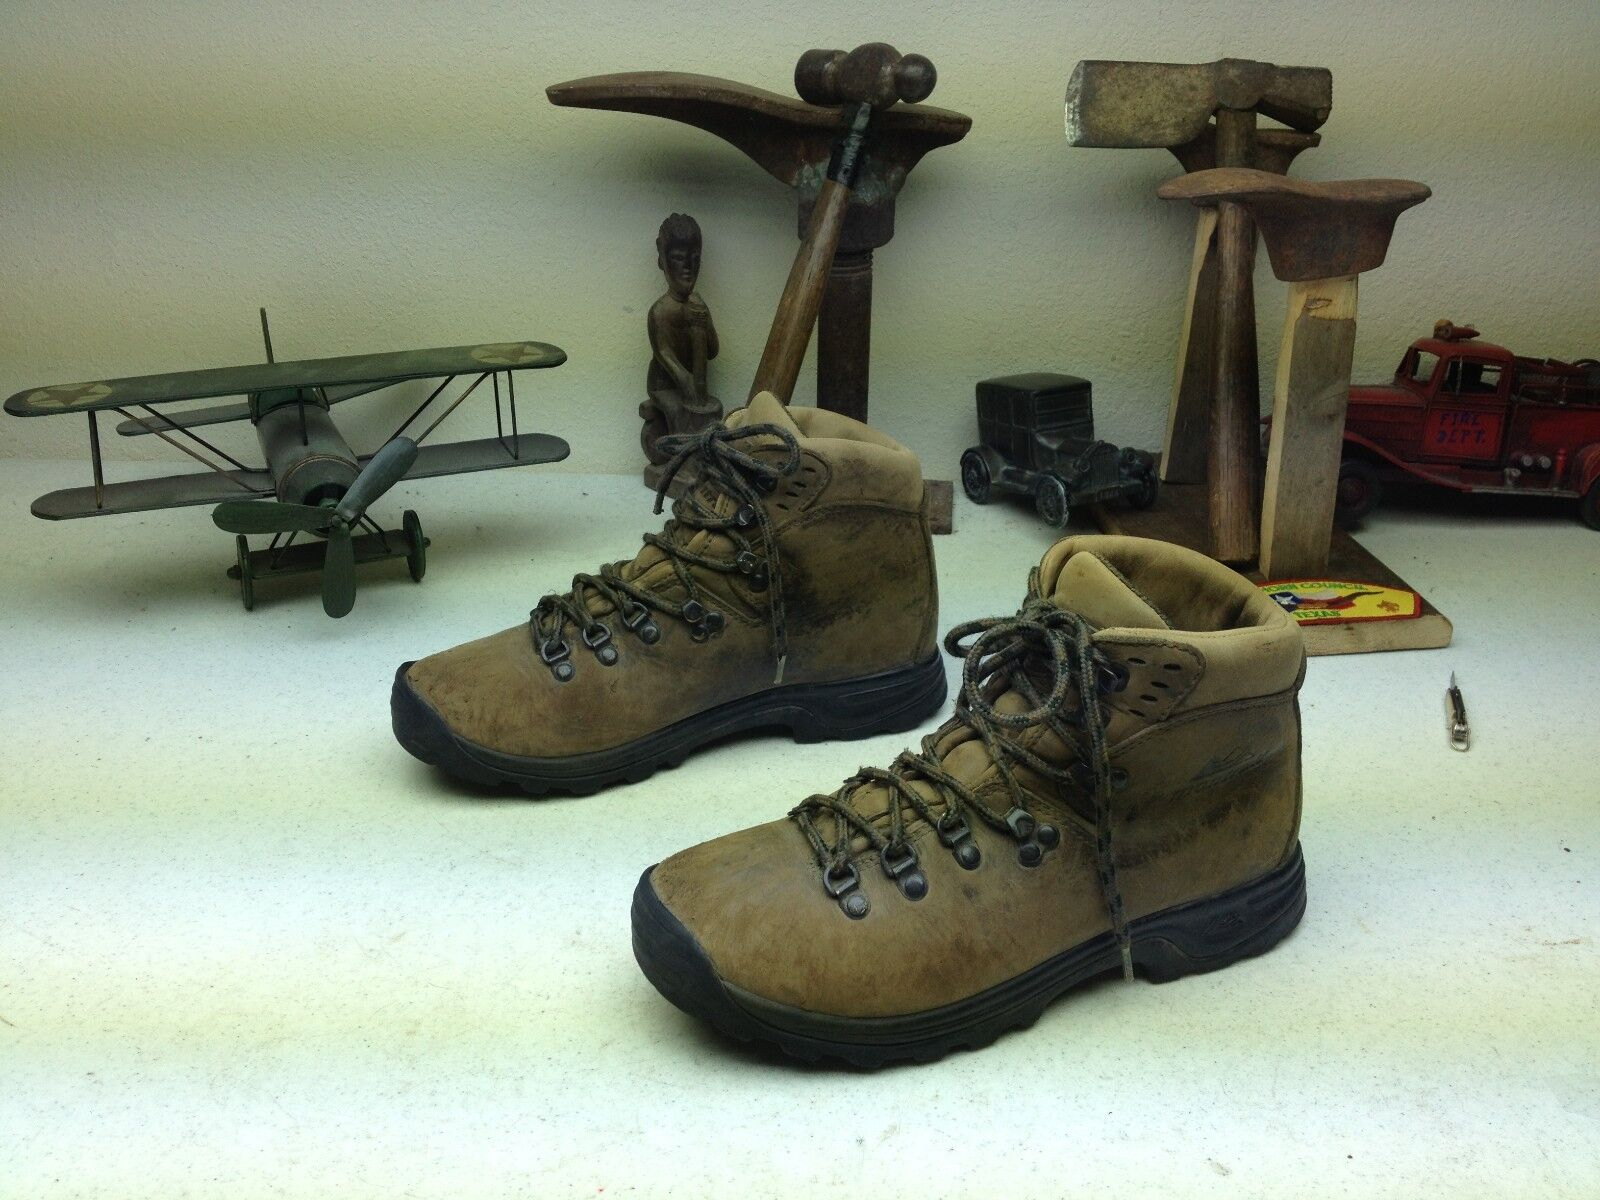 MONTRAIL BROWN DISTRESSED LEATHER LACE UP MOUNTAINEERING TRAIL BOOTS SIZE 8.5 M